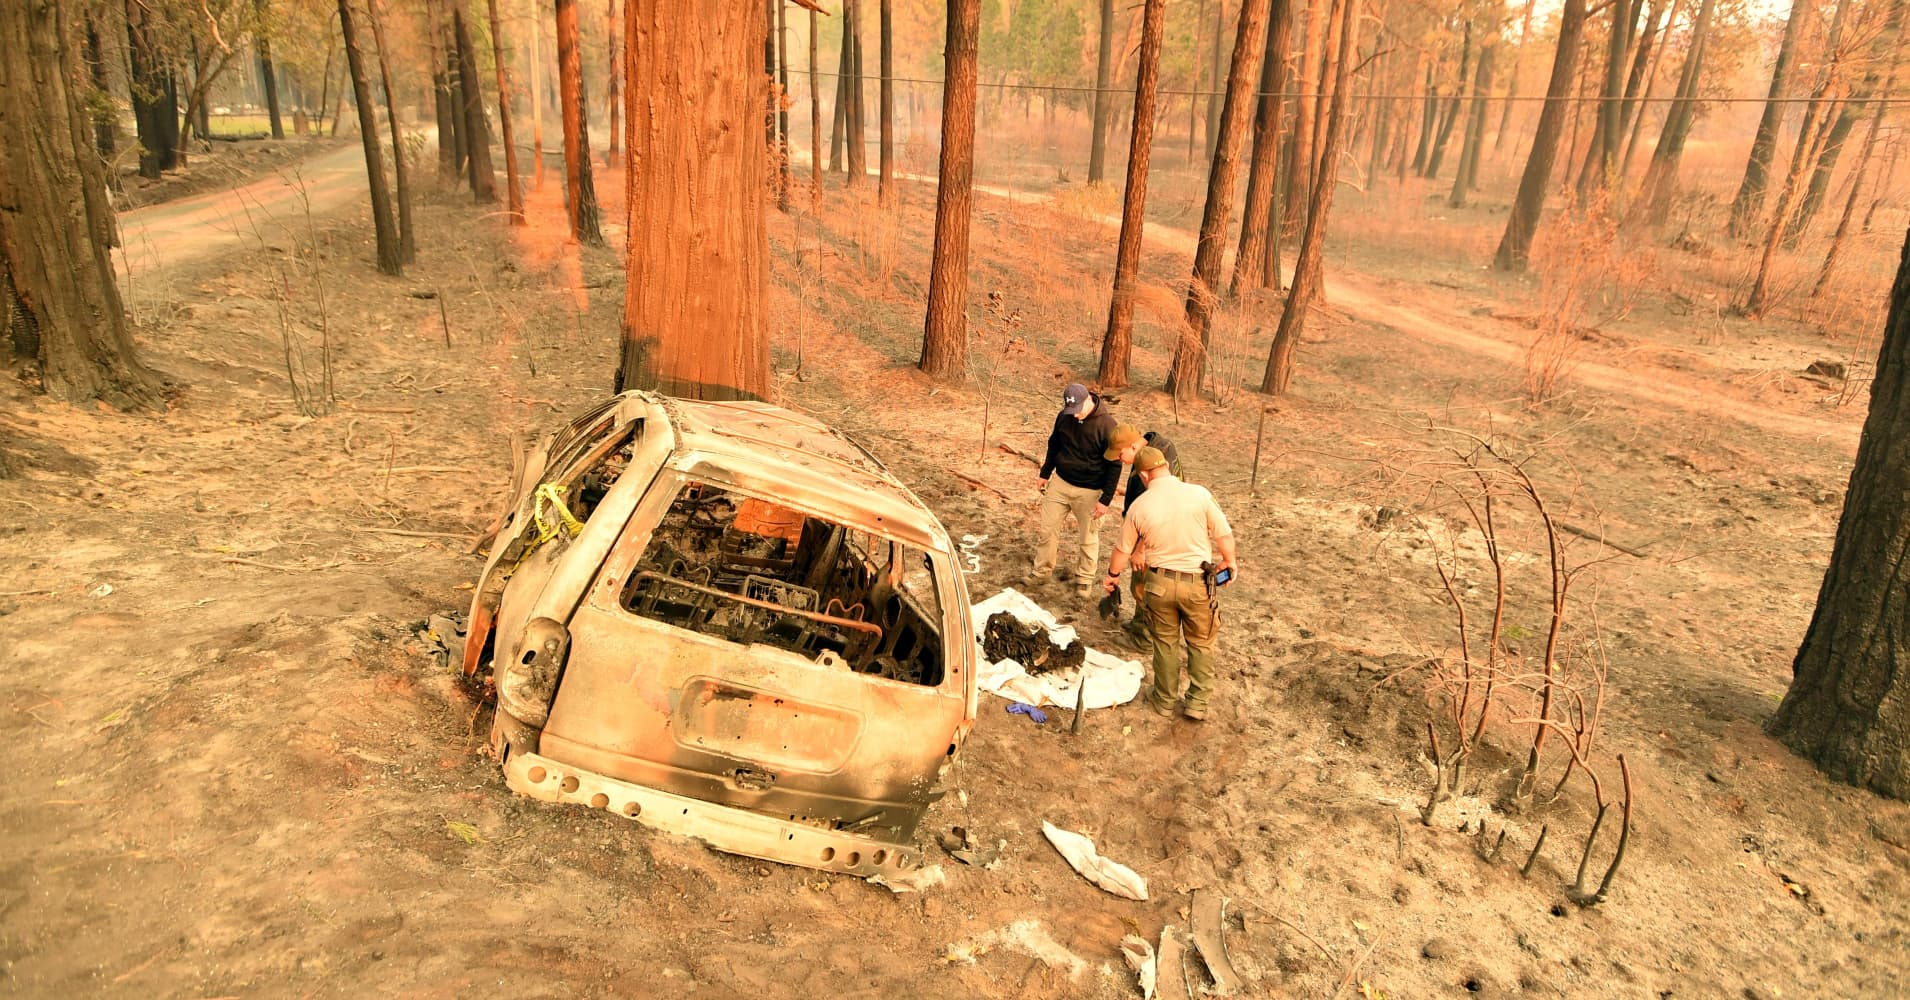 PG&E could face charges in California wildfires